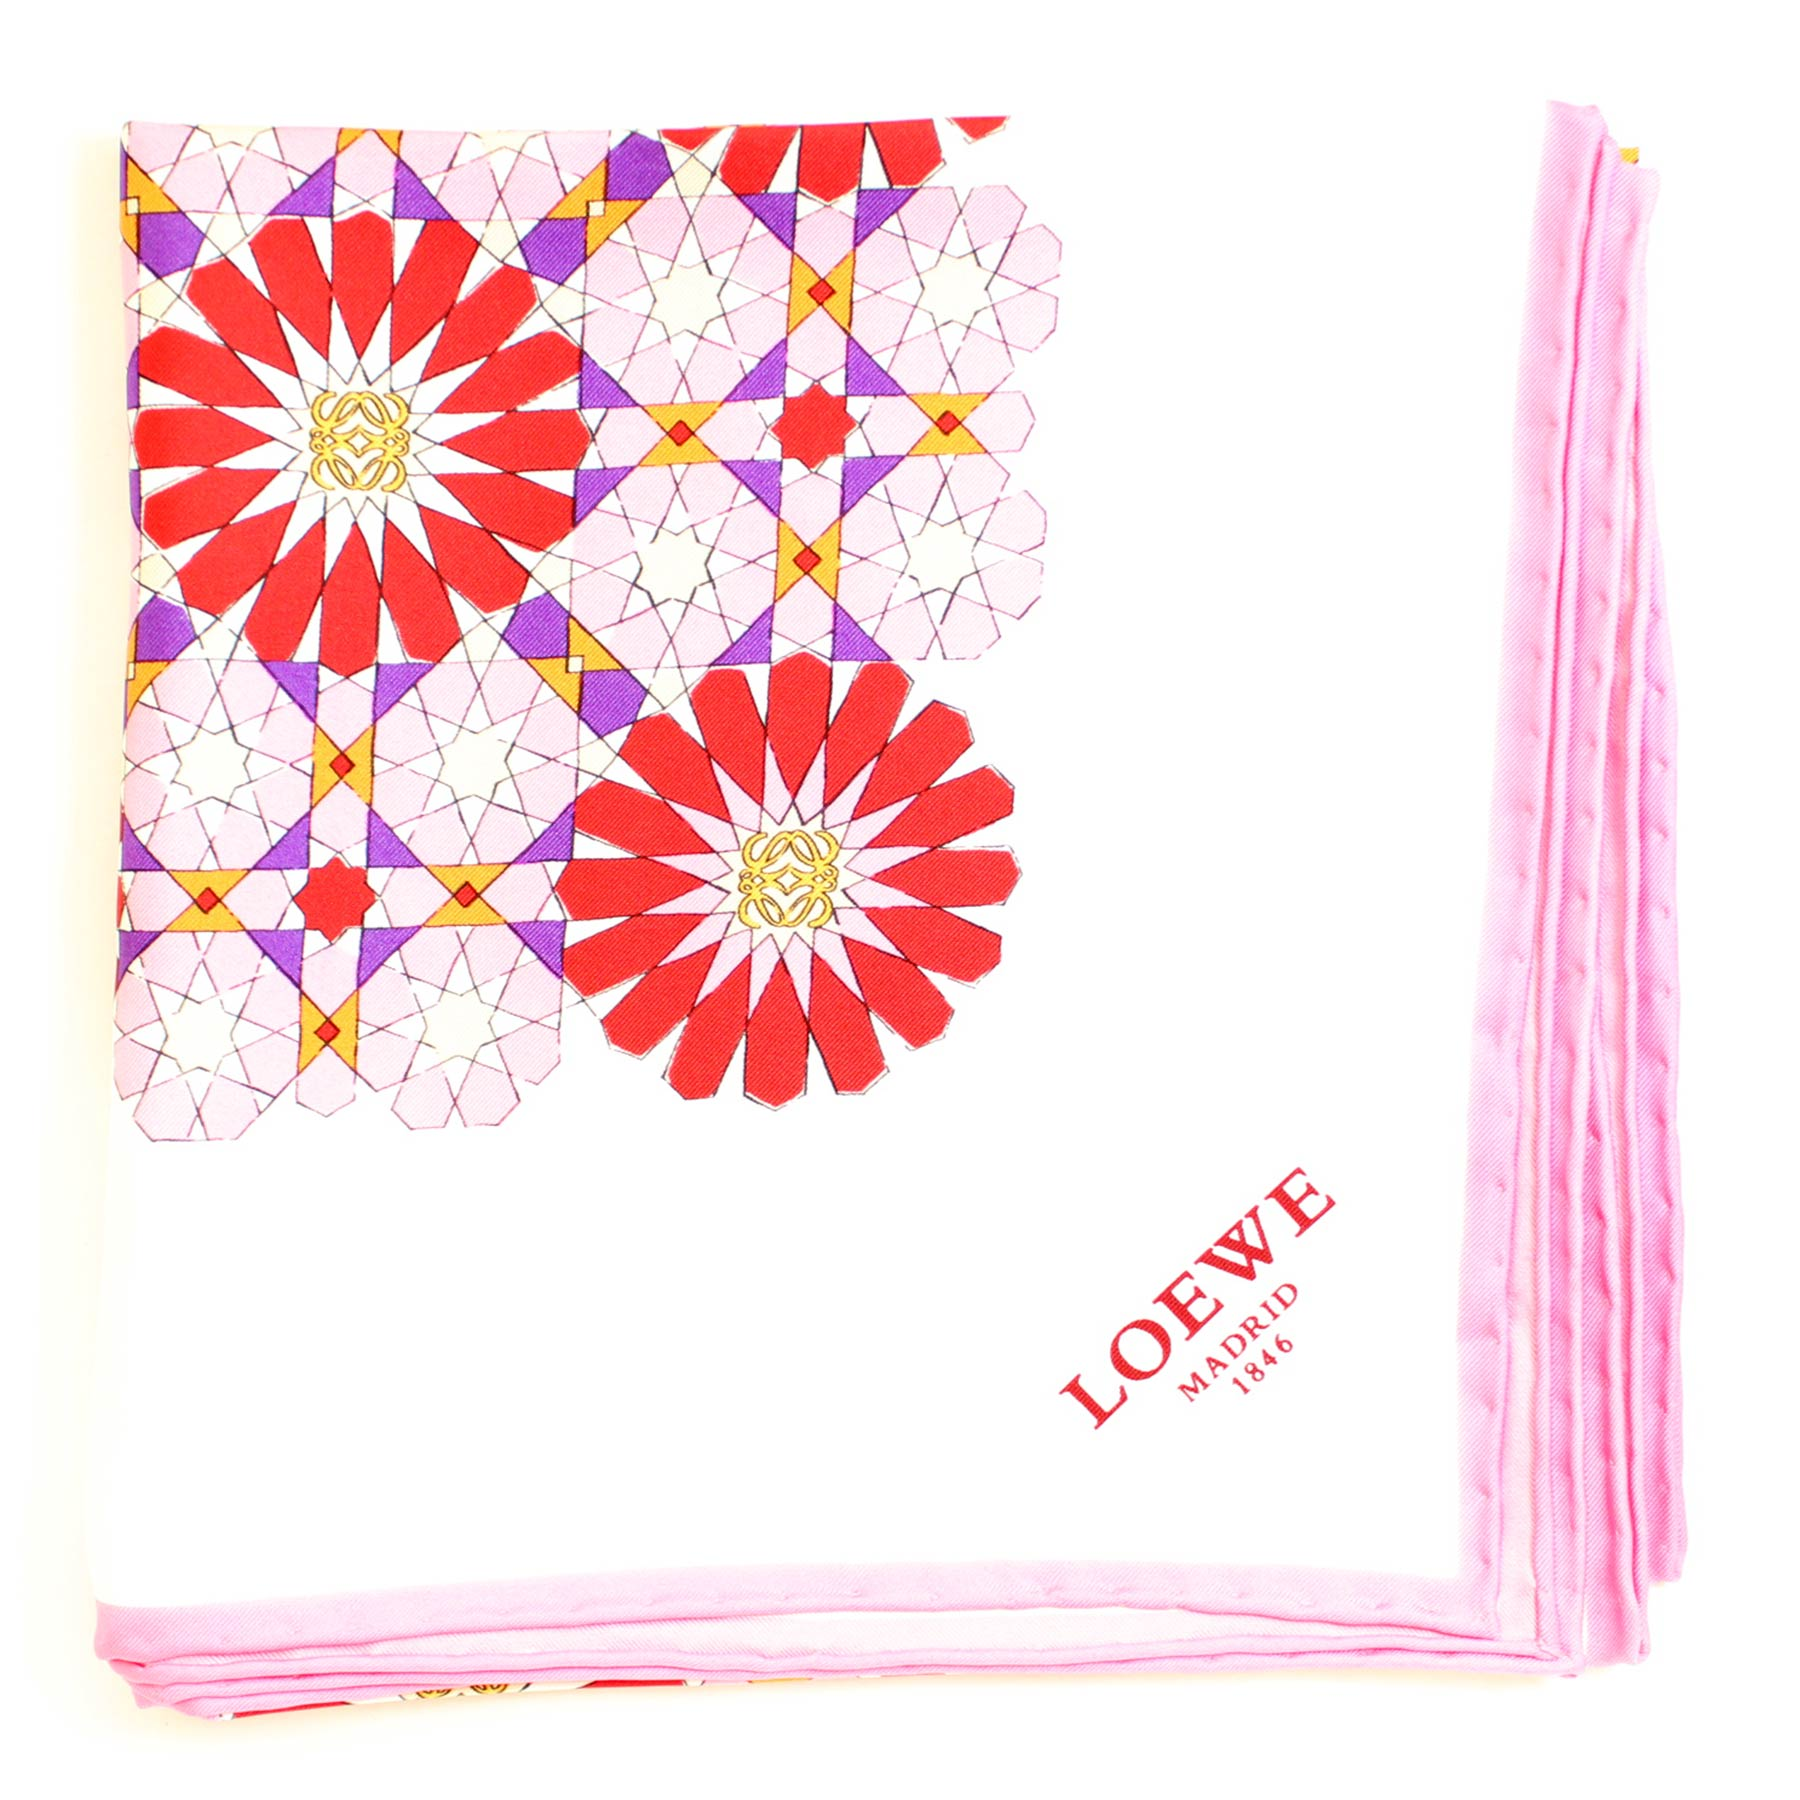 Loewe Scarf White Pink Red Purple Geometric Flowers